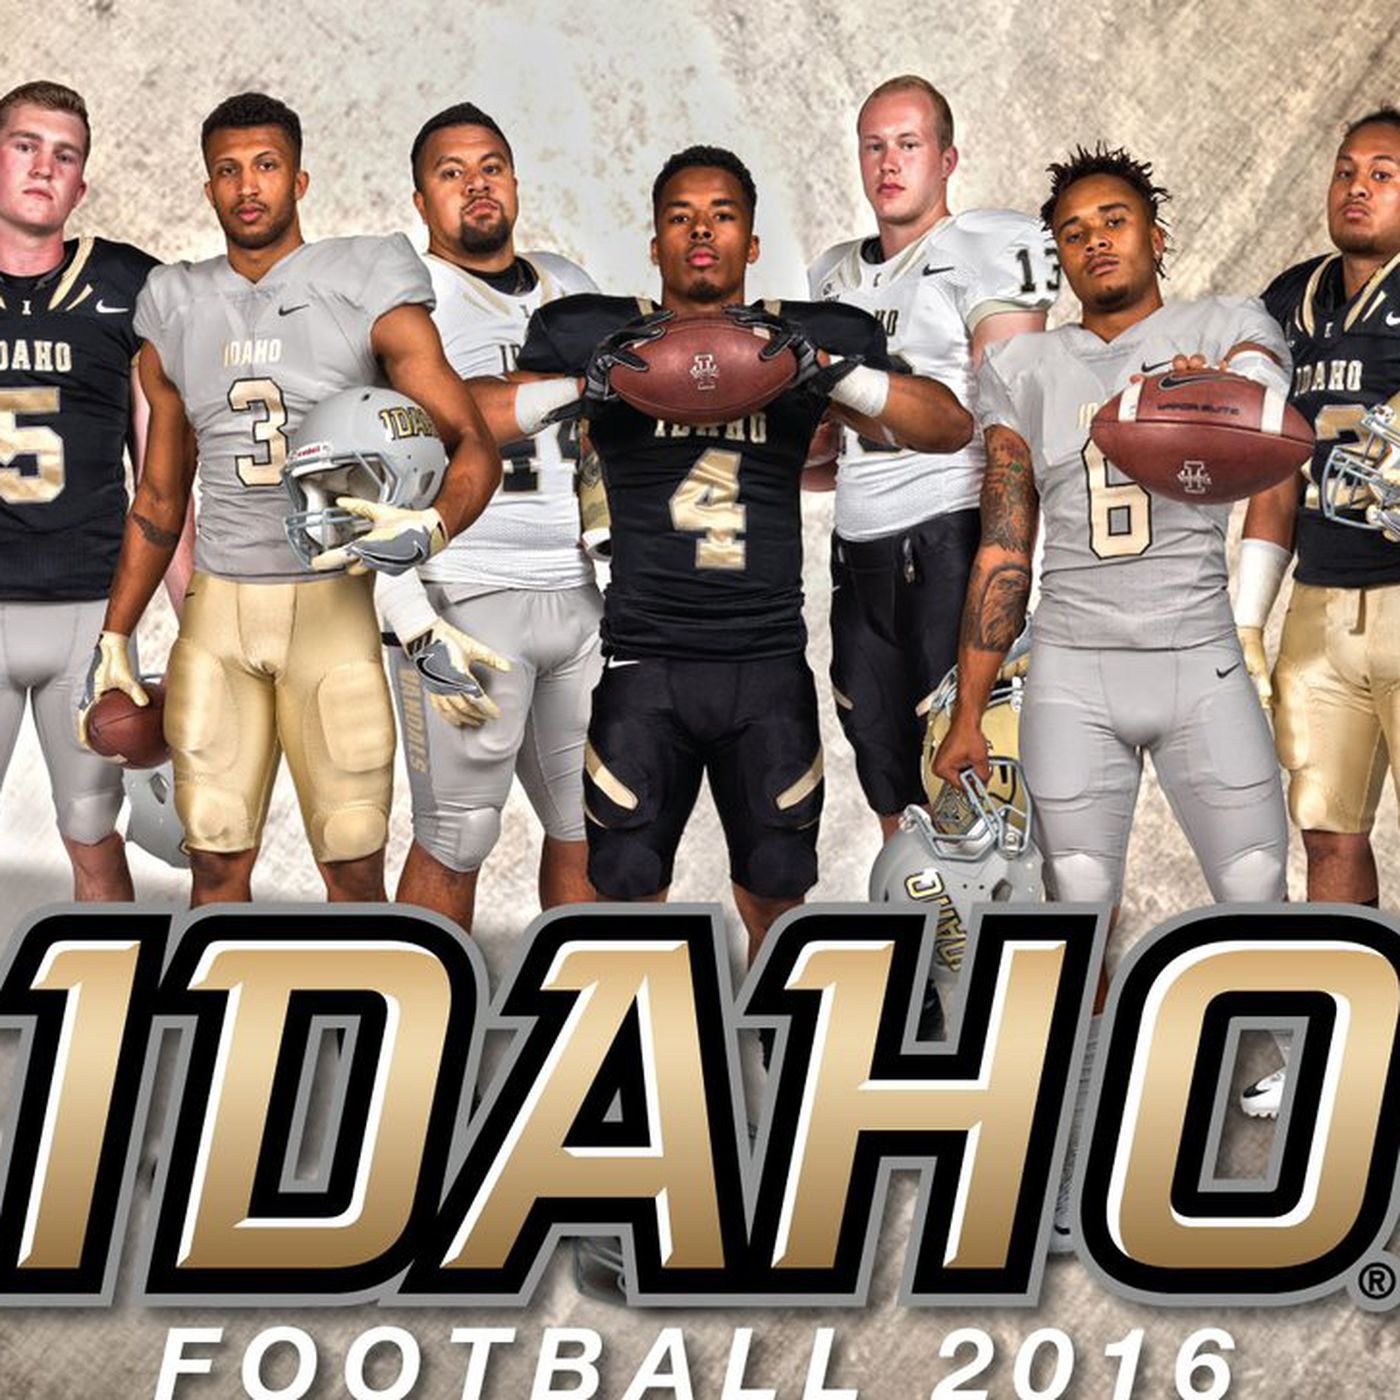 innovative design b7e5a 3d4f8 Idaho released new uniforms and they're... interesting ...